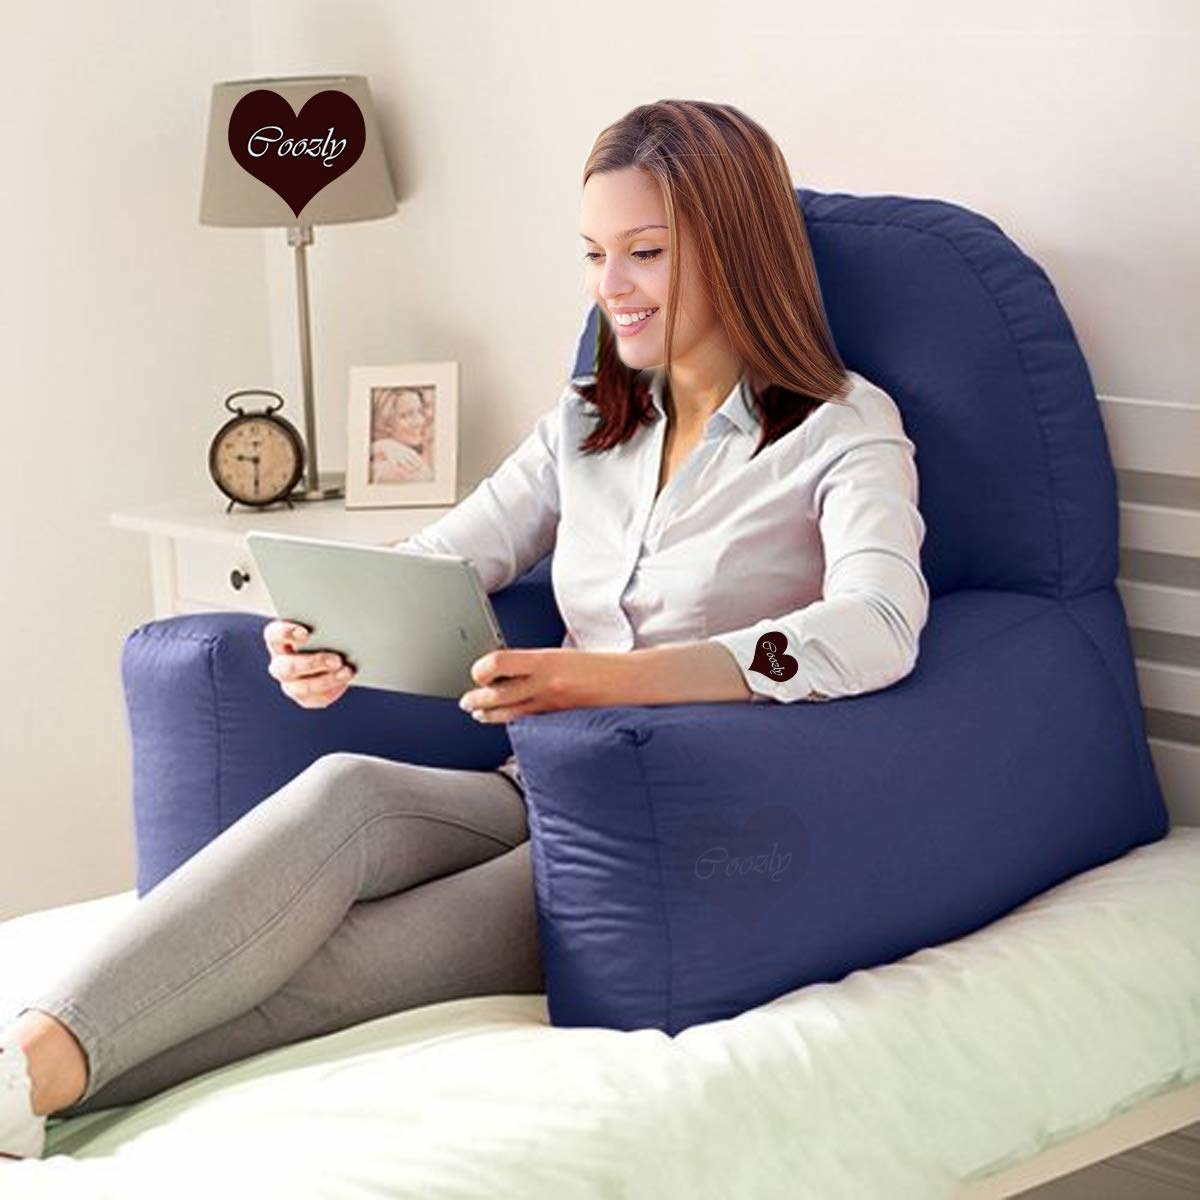 A blue backrest pillow with a woman leaning on it